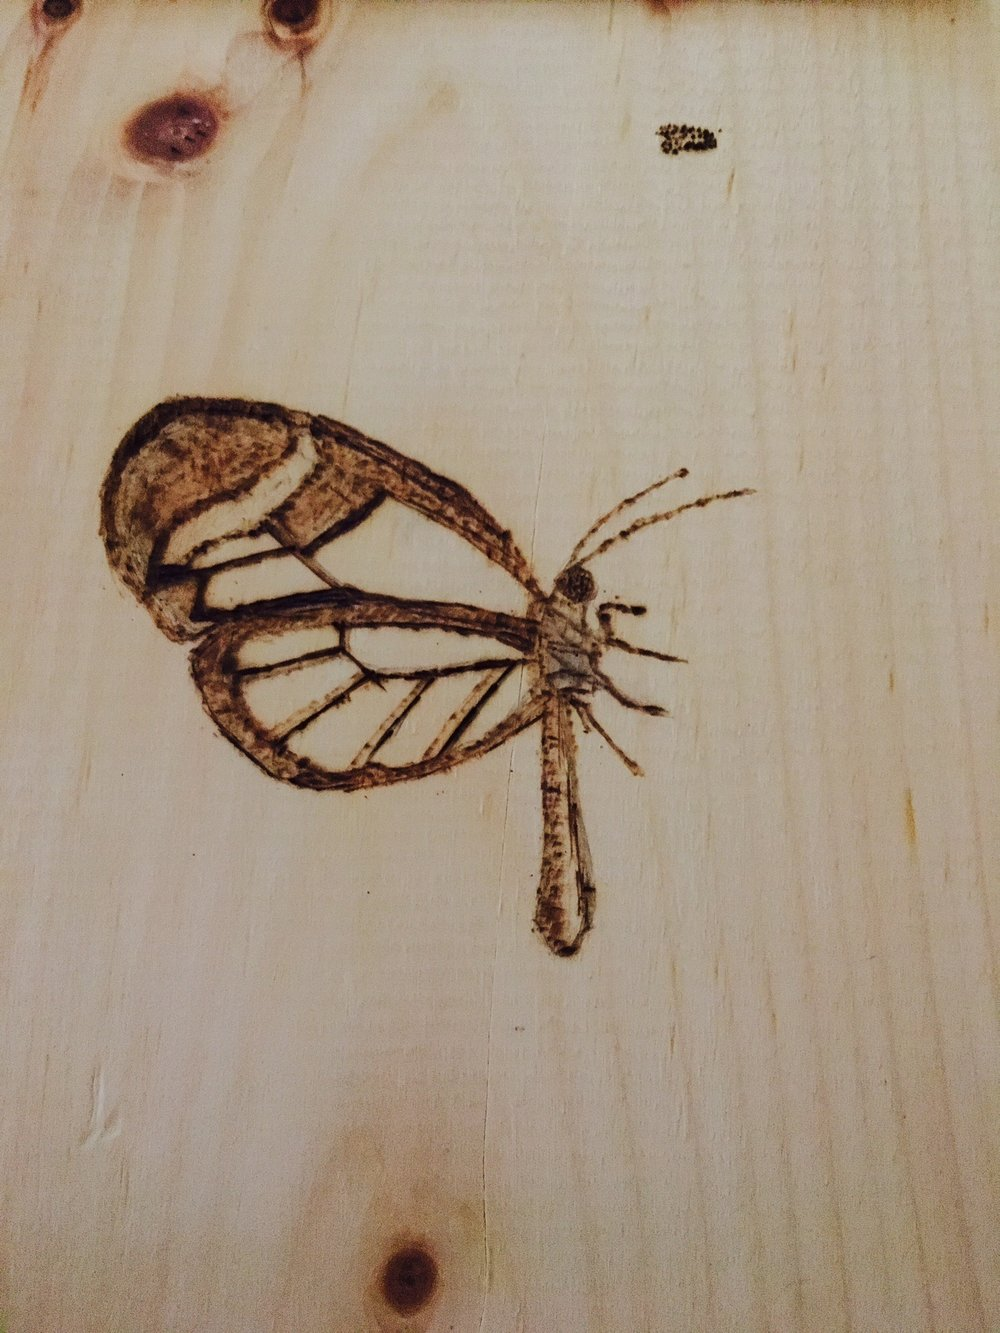 Woodburning design by me